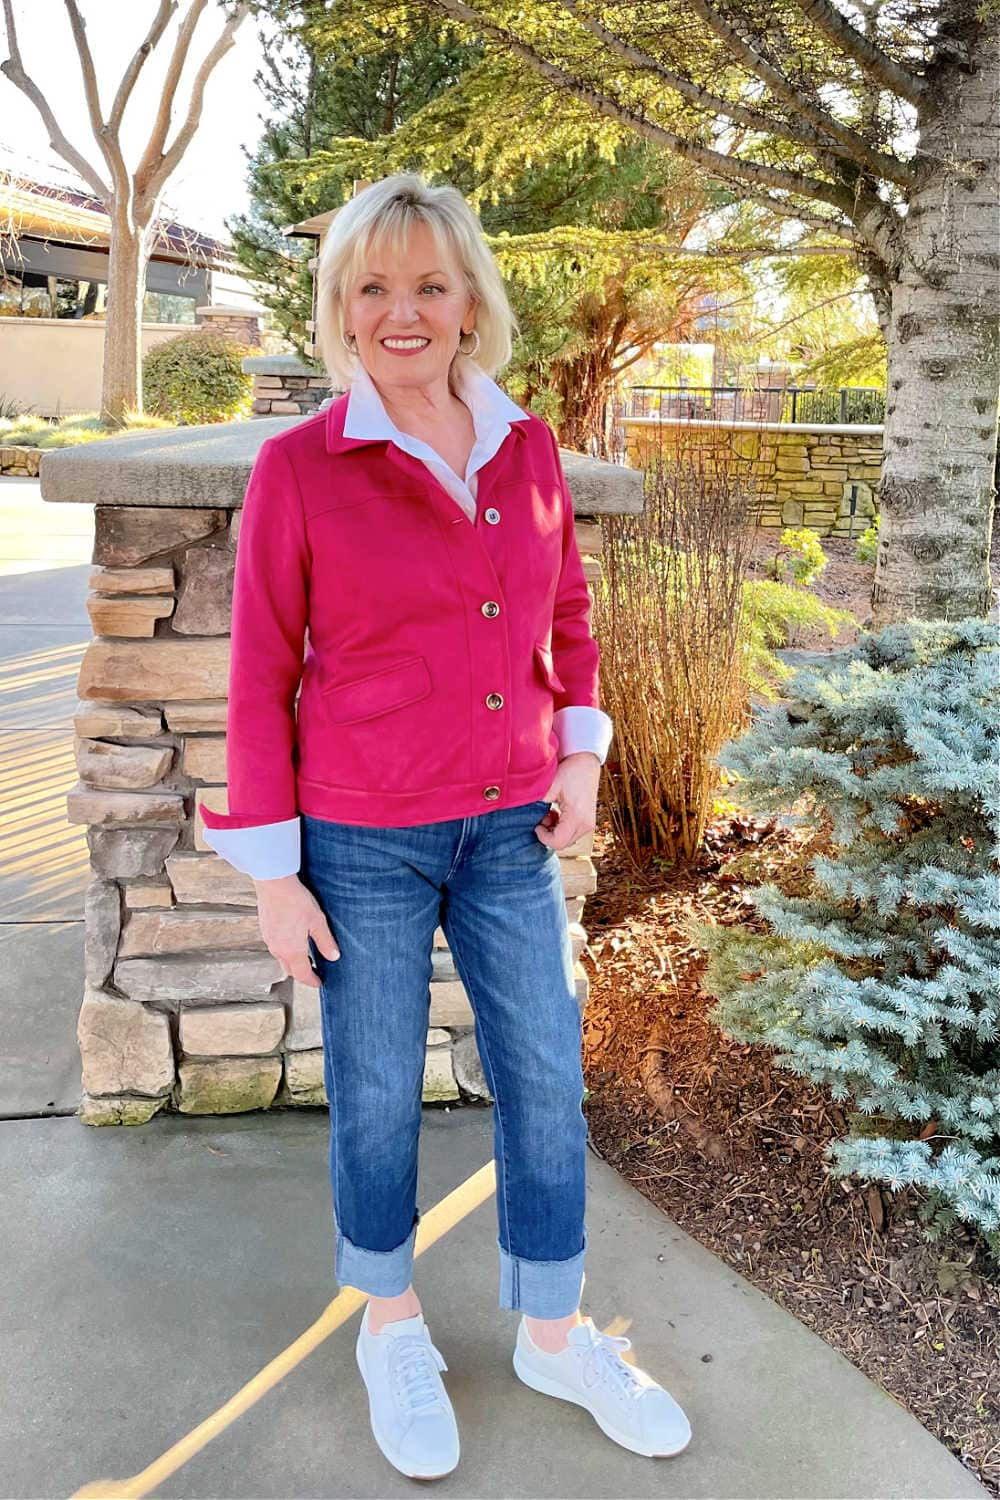 woman wearing white shhirt, bright pink jacket and blue jeans